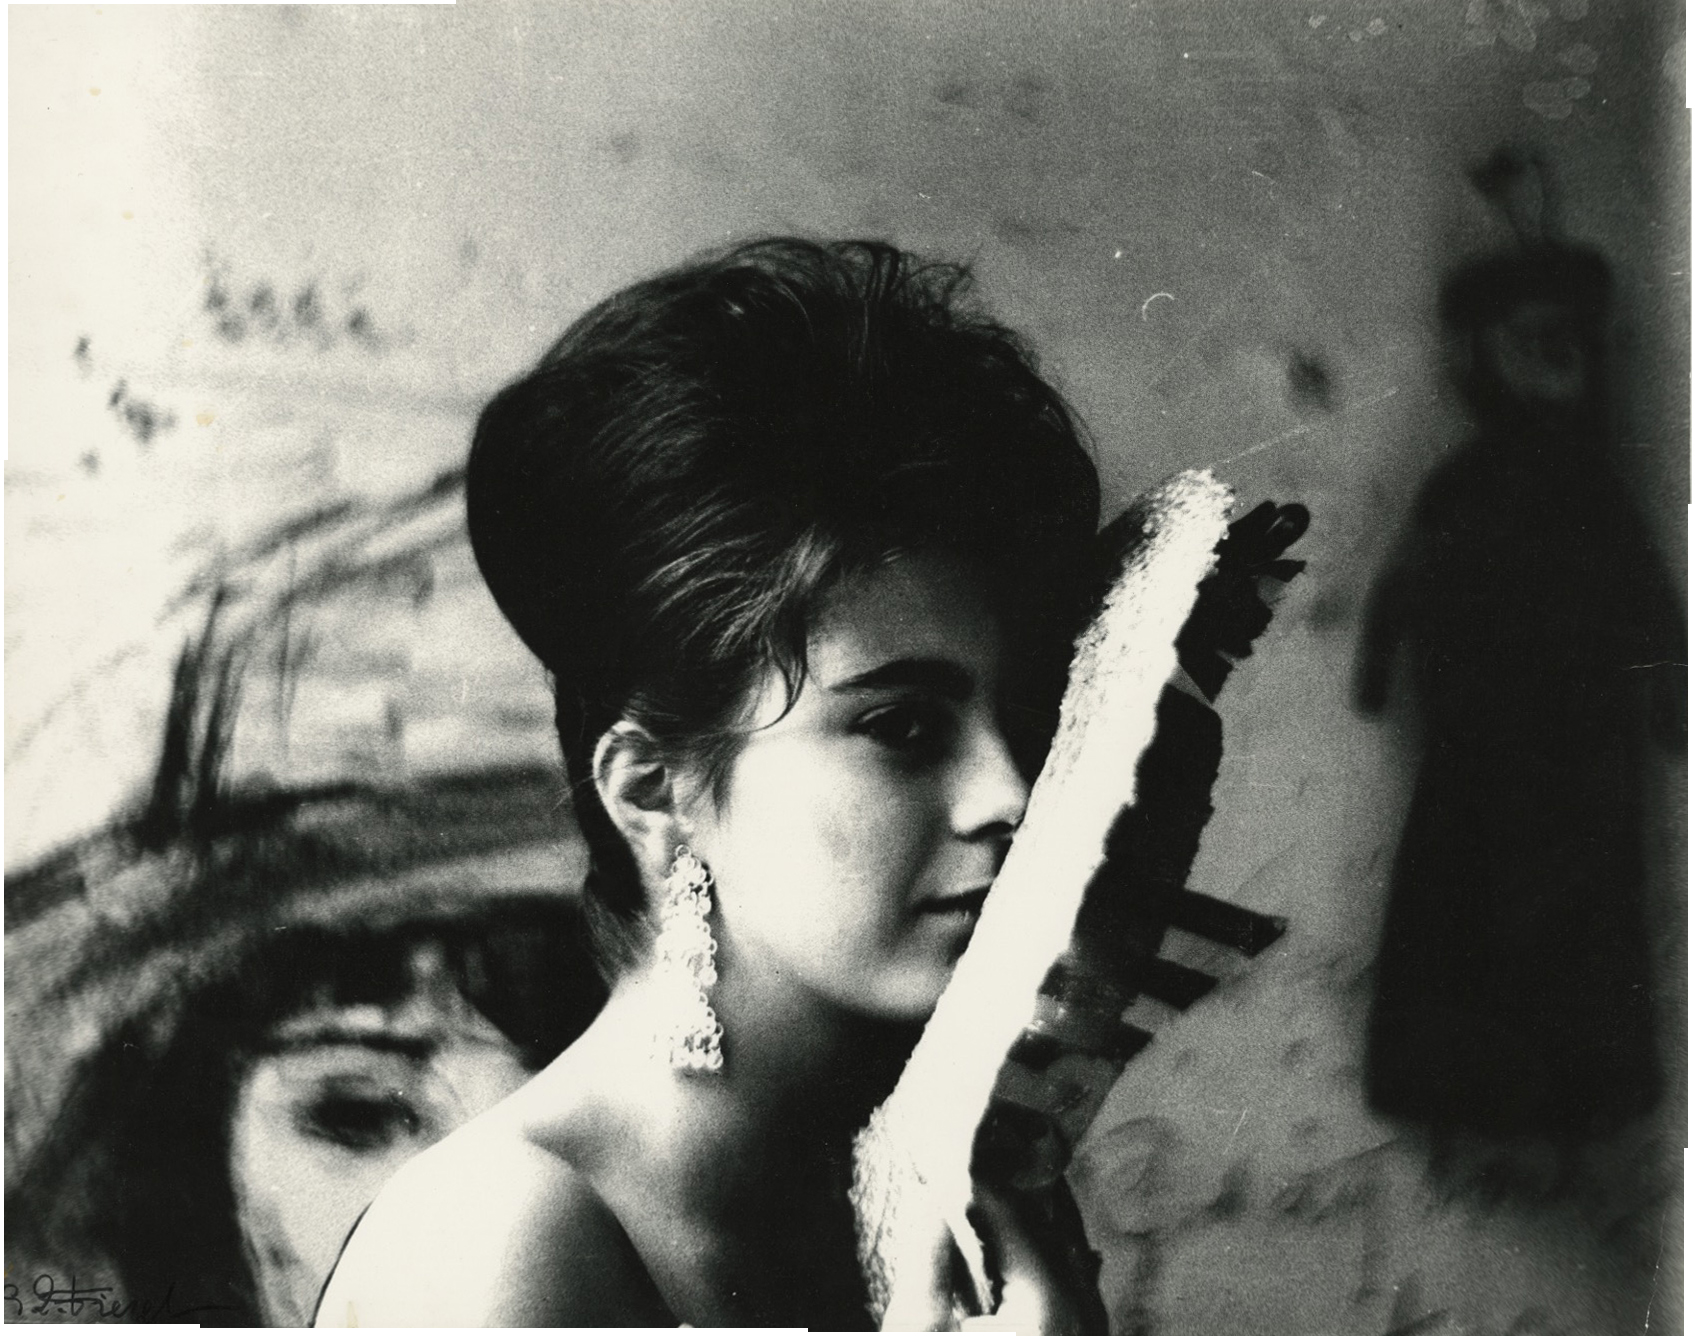 Untitled, ca. 1960s